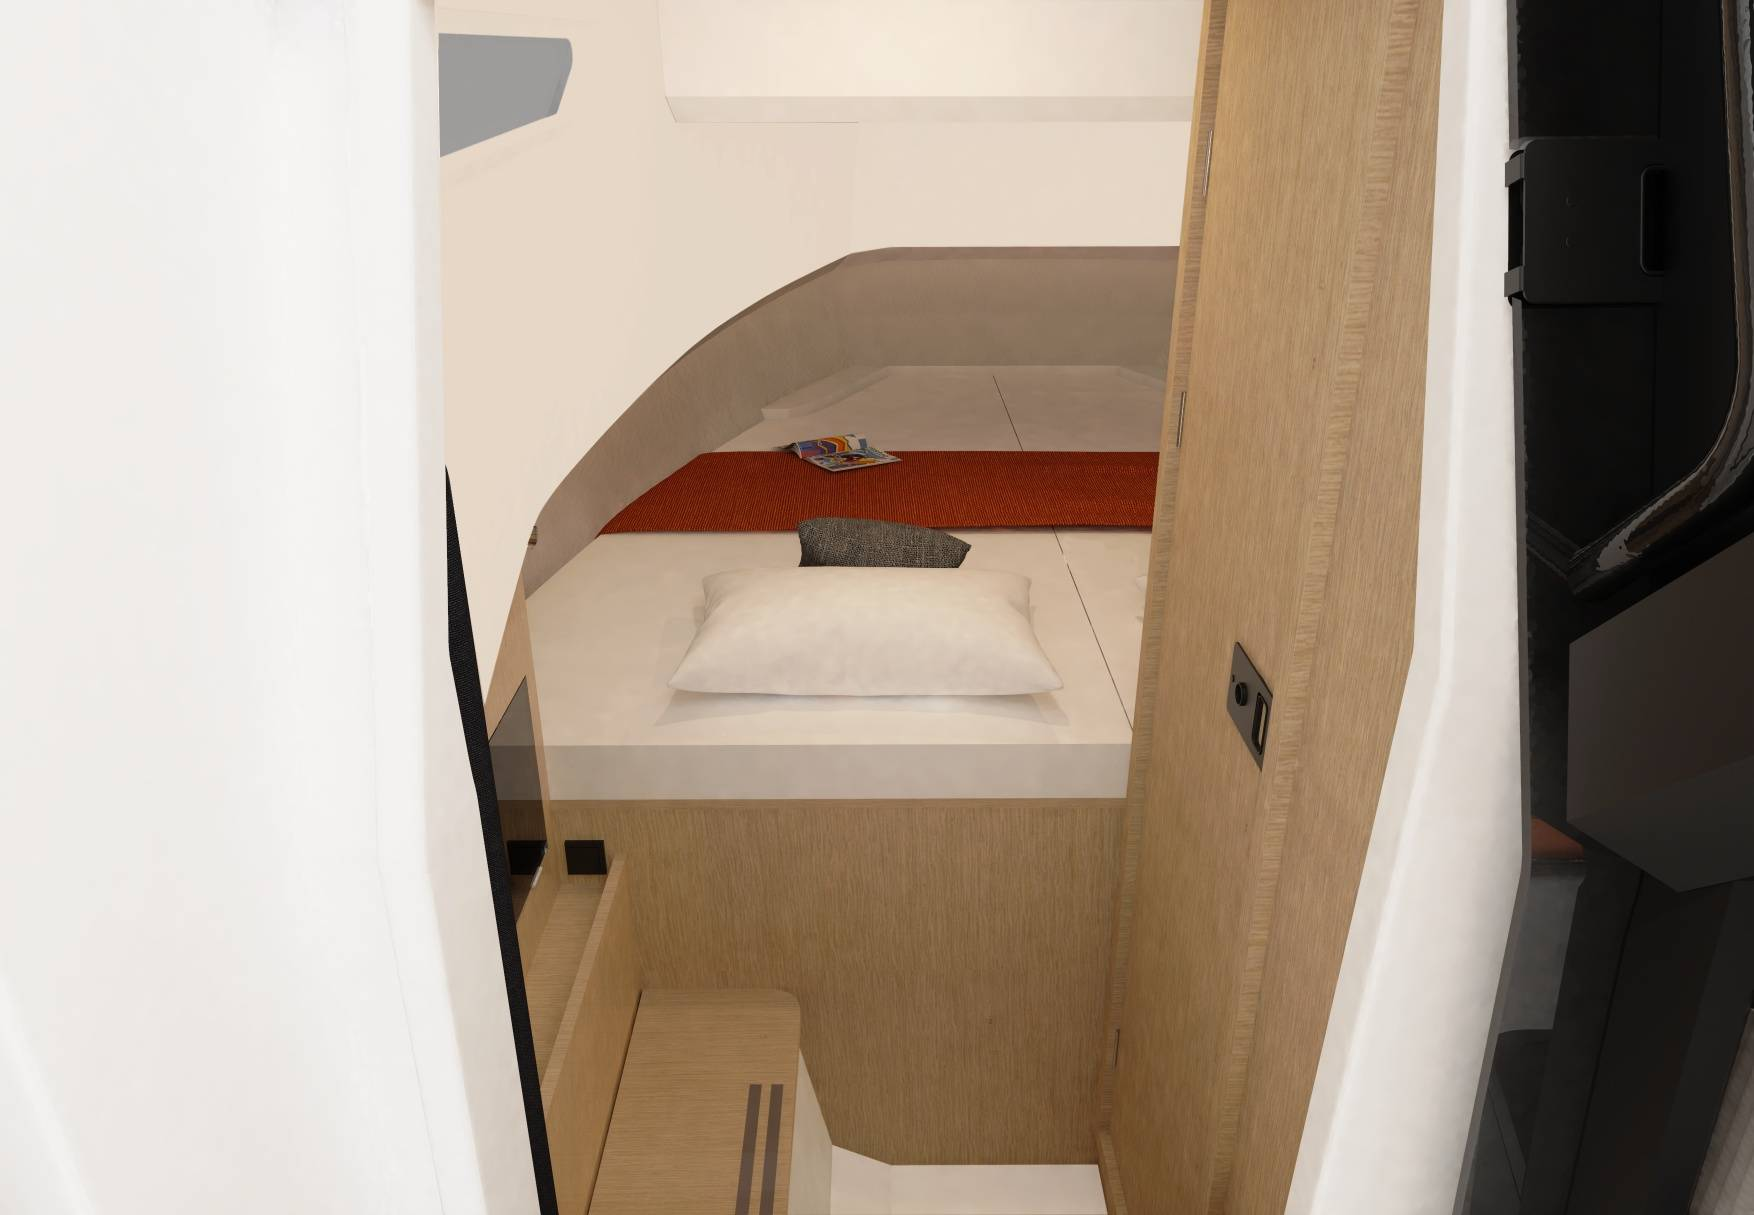 A Render Of Our D28 SUV Interior Toilet Area